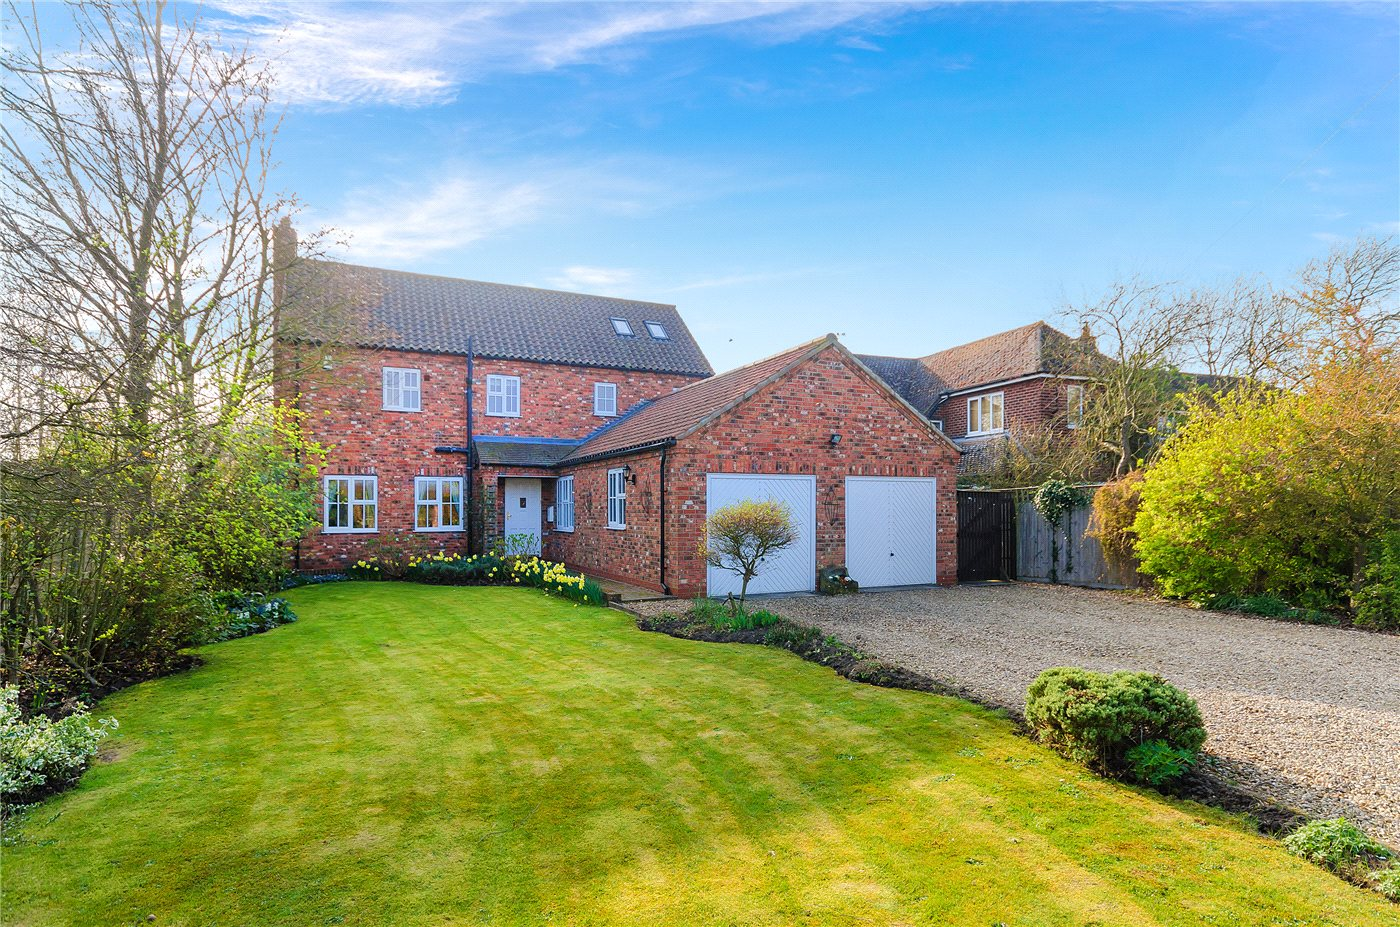 5 Bedrooms Detached House for sale in Ancaster Lane, Oasby, Grantham, NG32